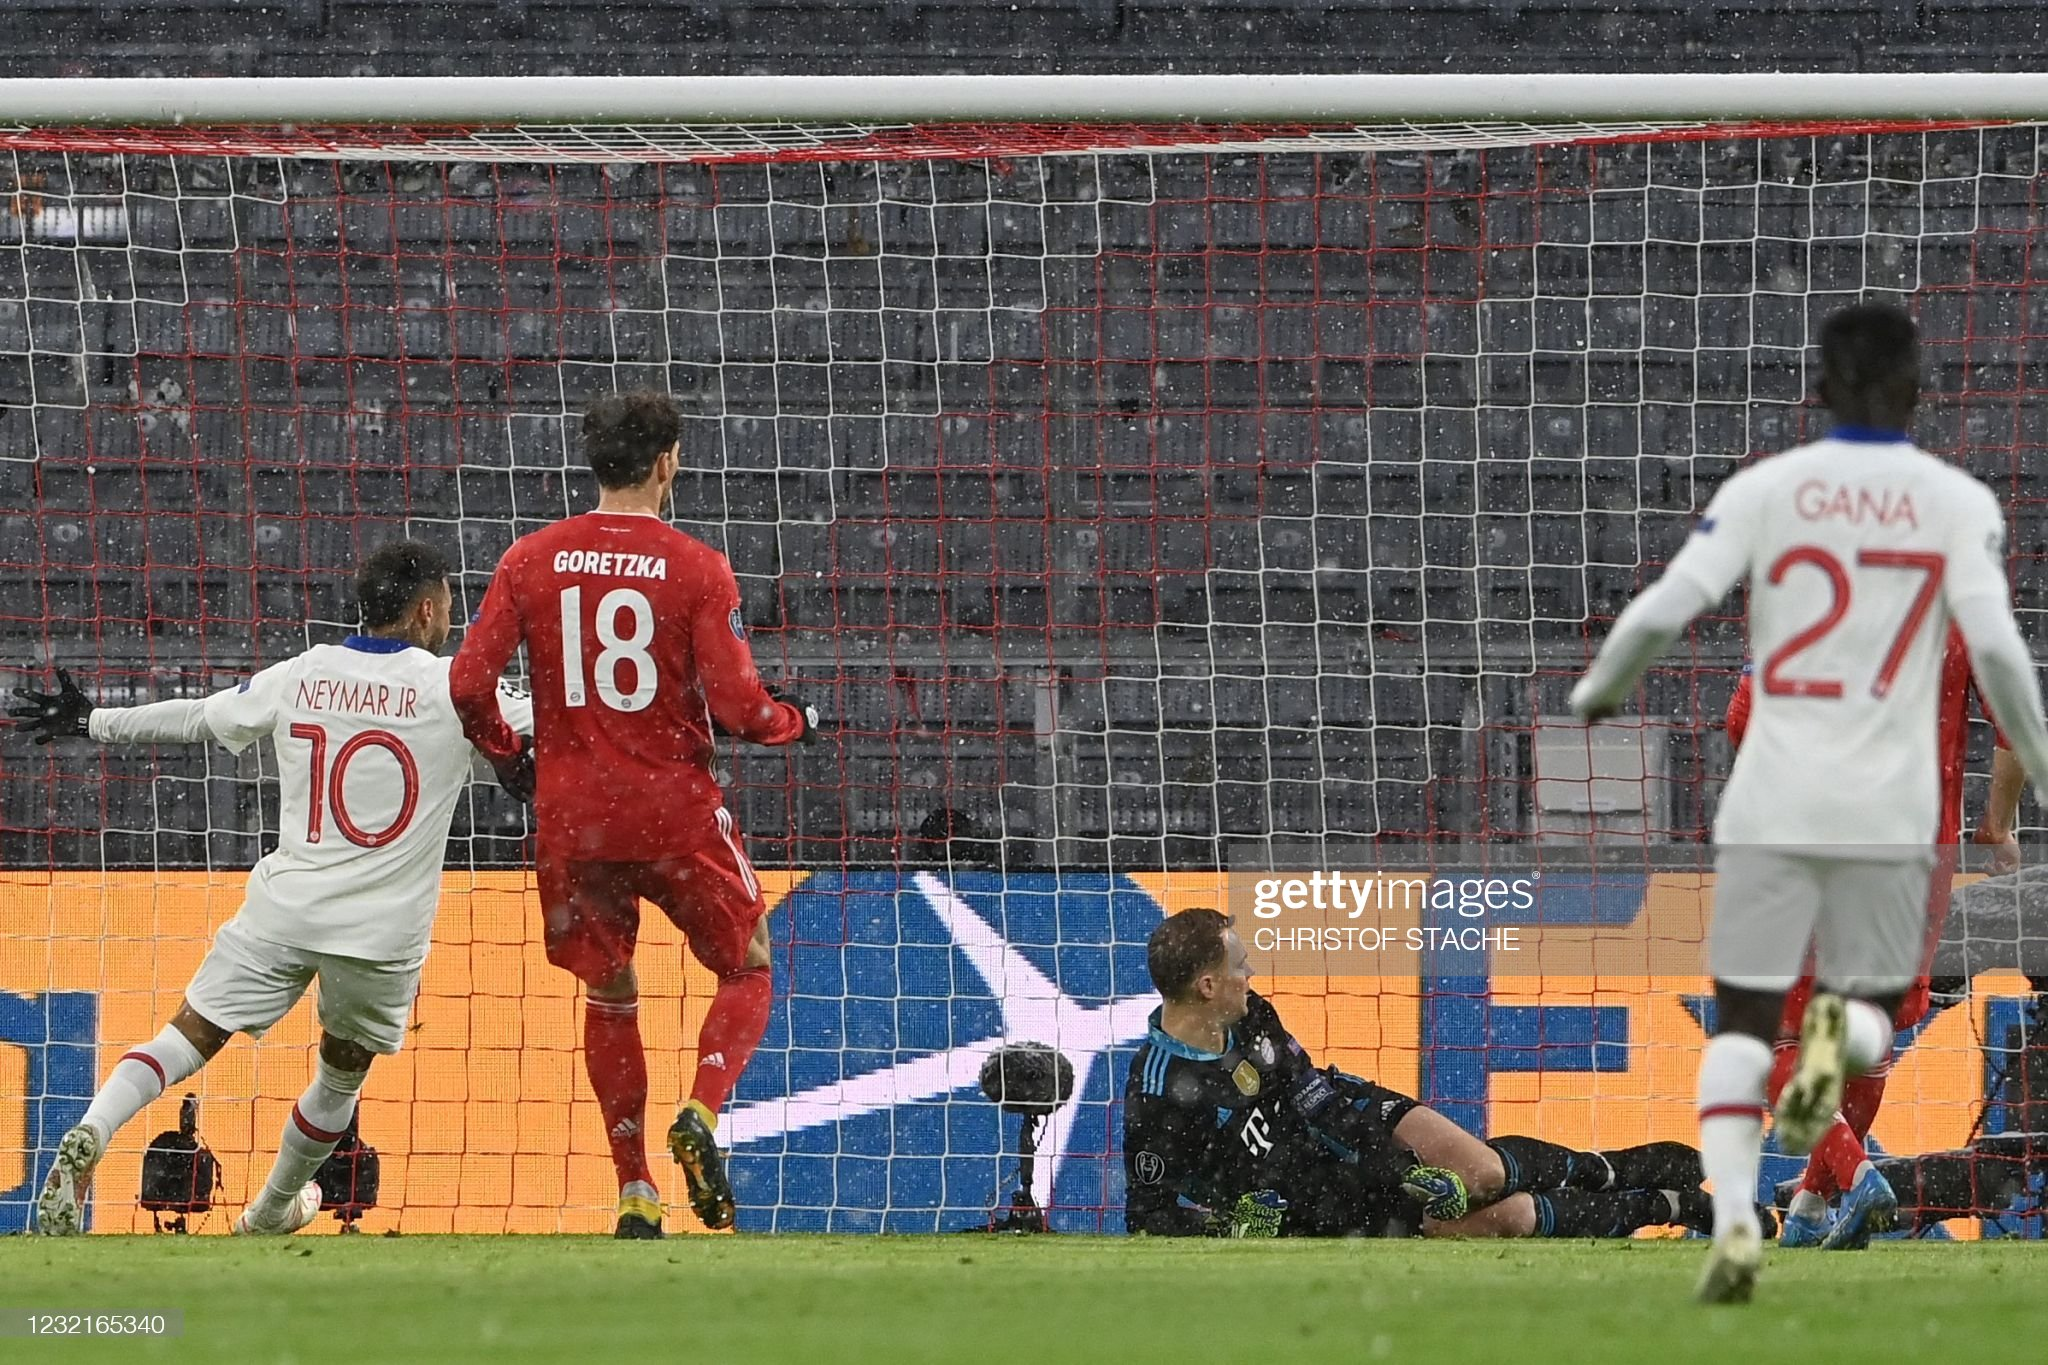 FBL-EUR-C1-BAYERN MUNICH-PSG : News Photo